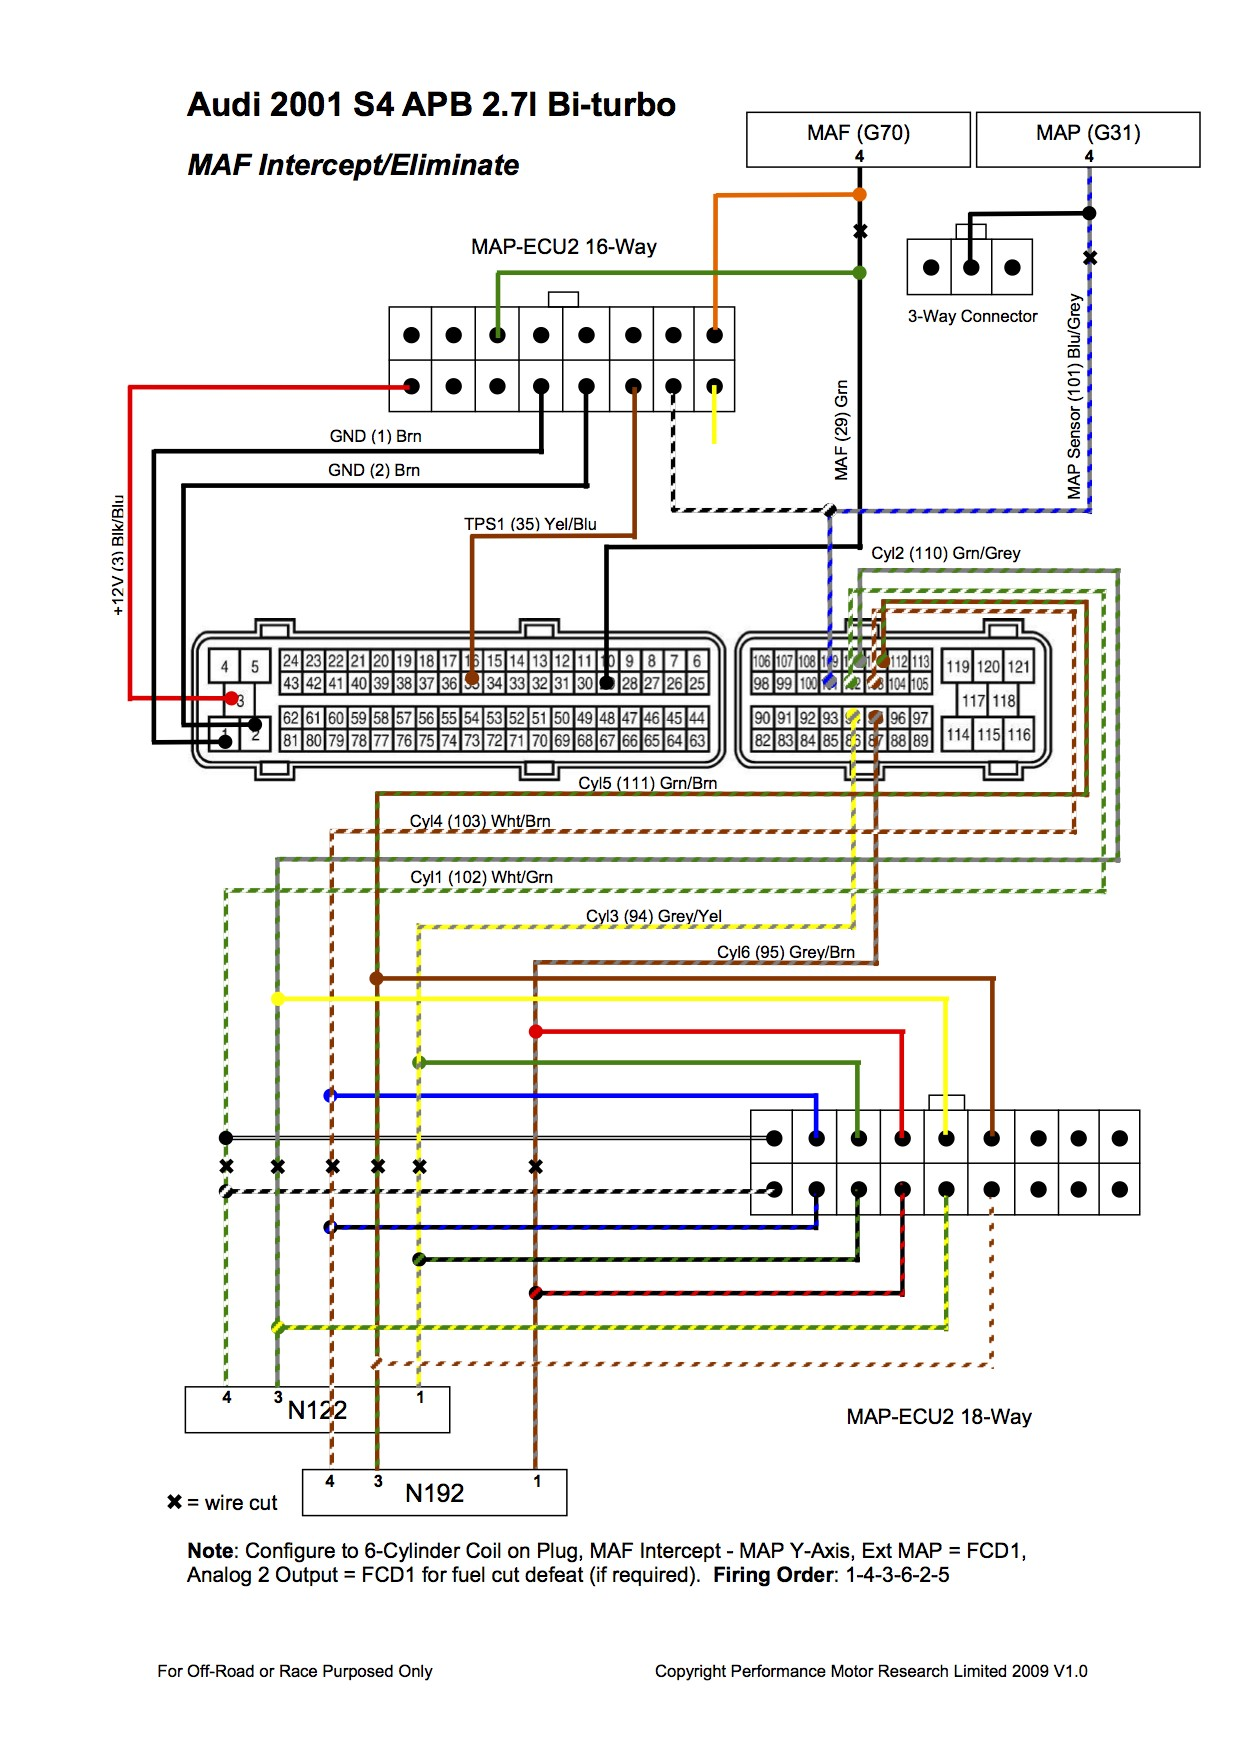 Wiring diagrams for 1959 880 oliver | Find image on